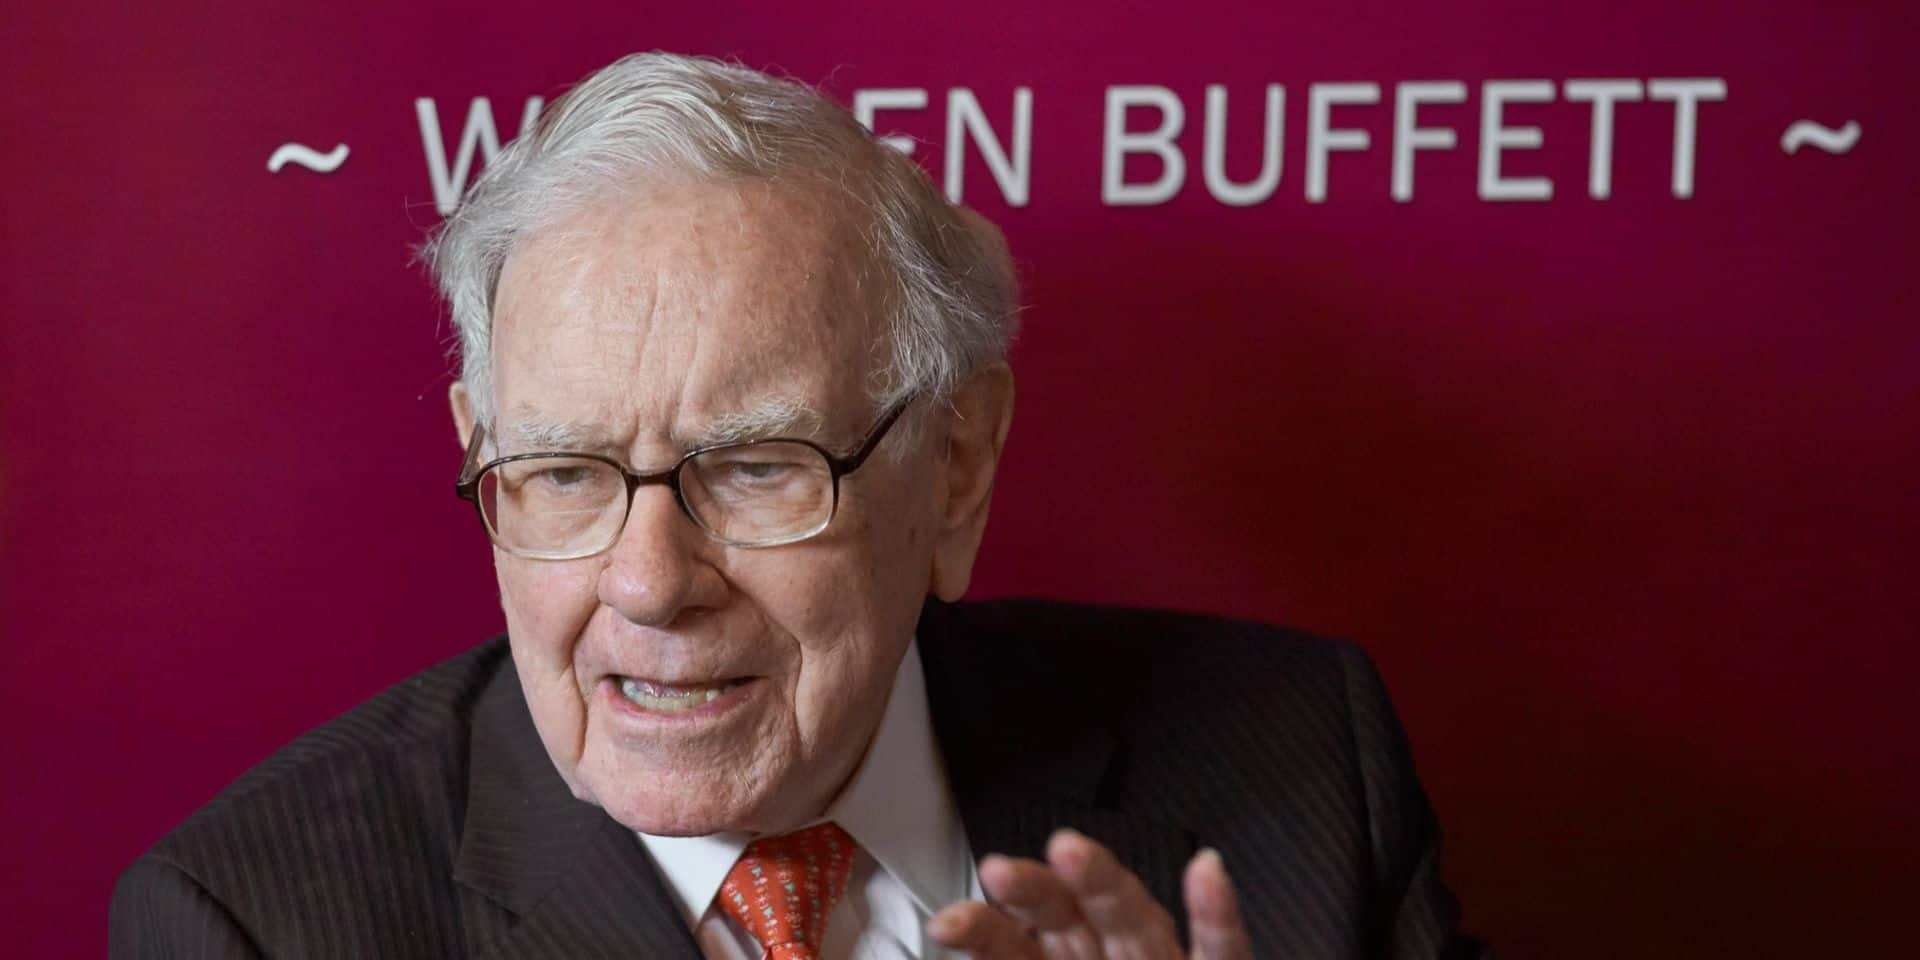 Warren Buffett assis sur une montagne de 128 milliards de dollars cash